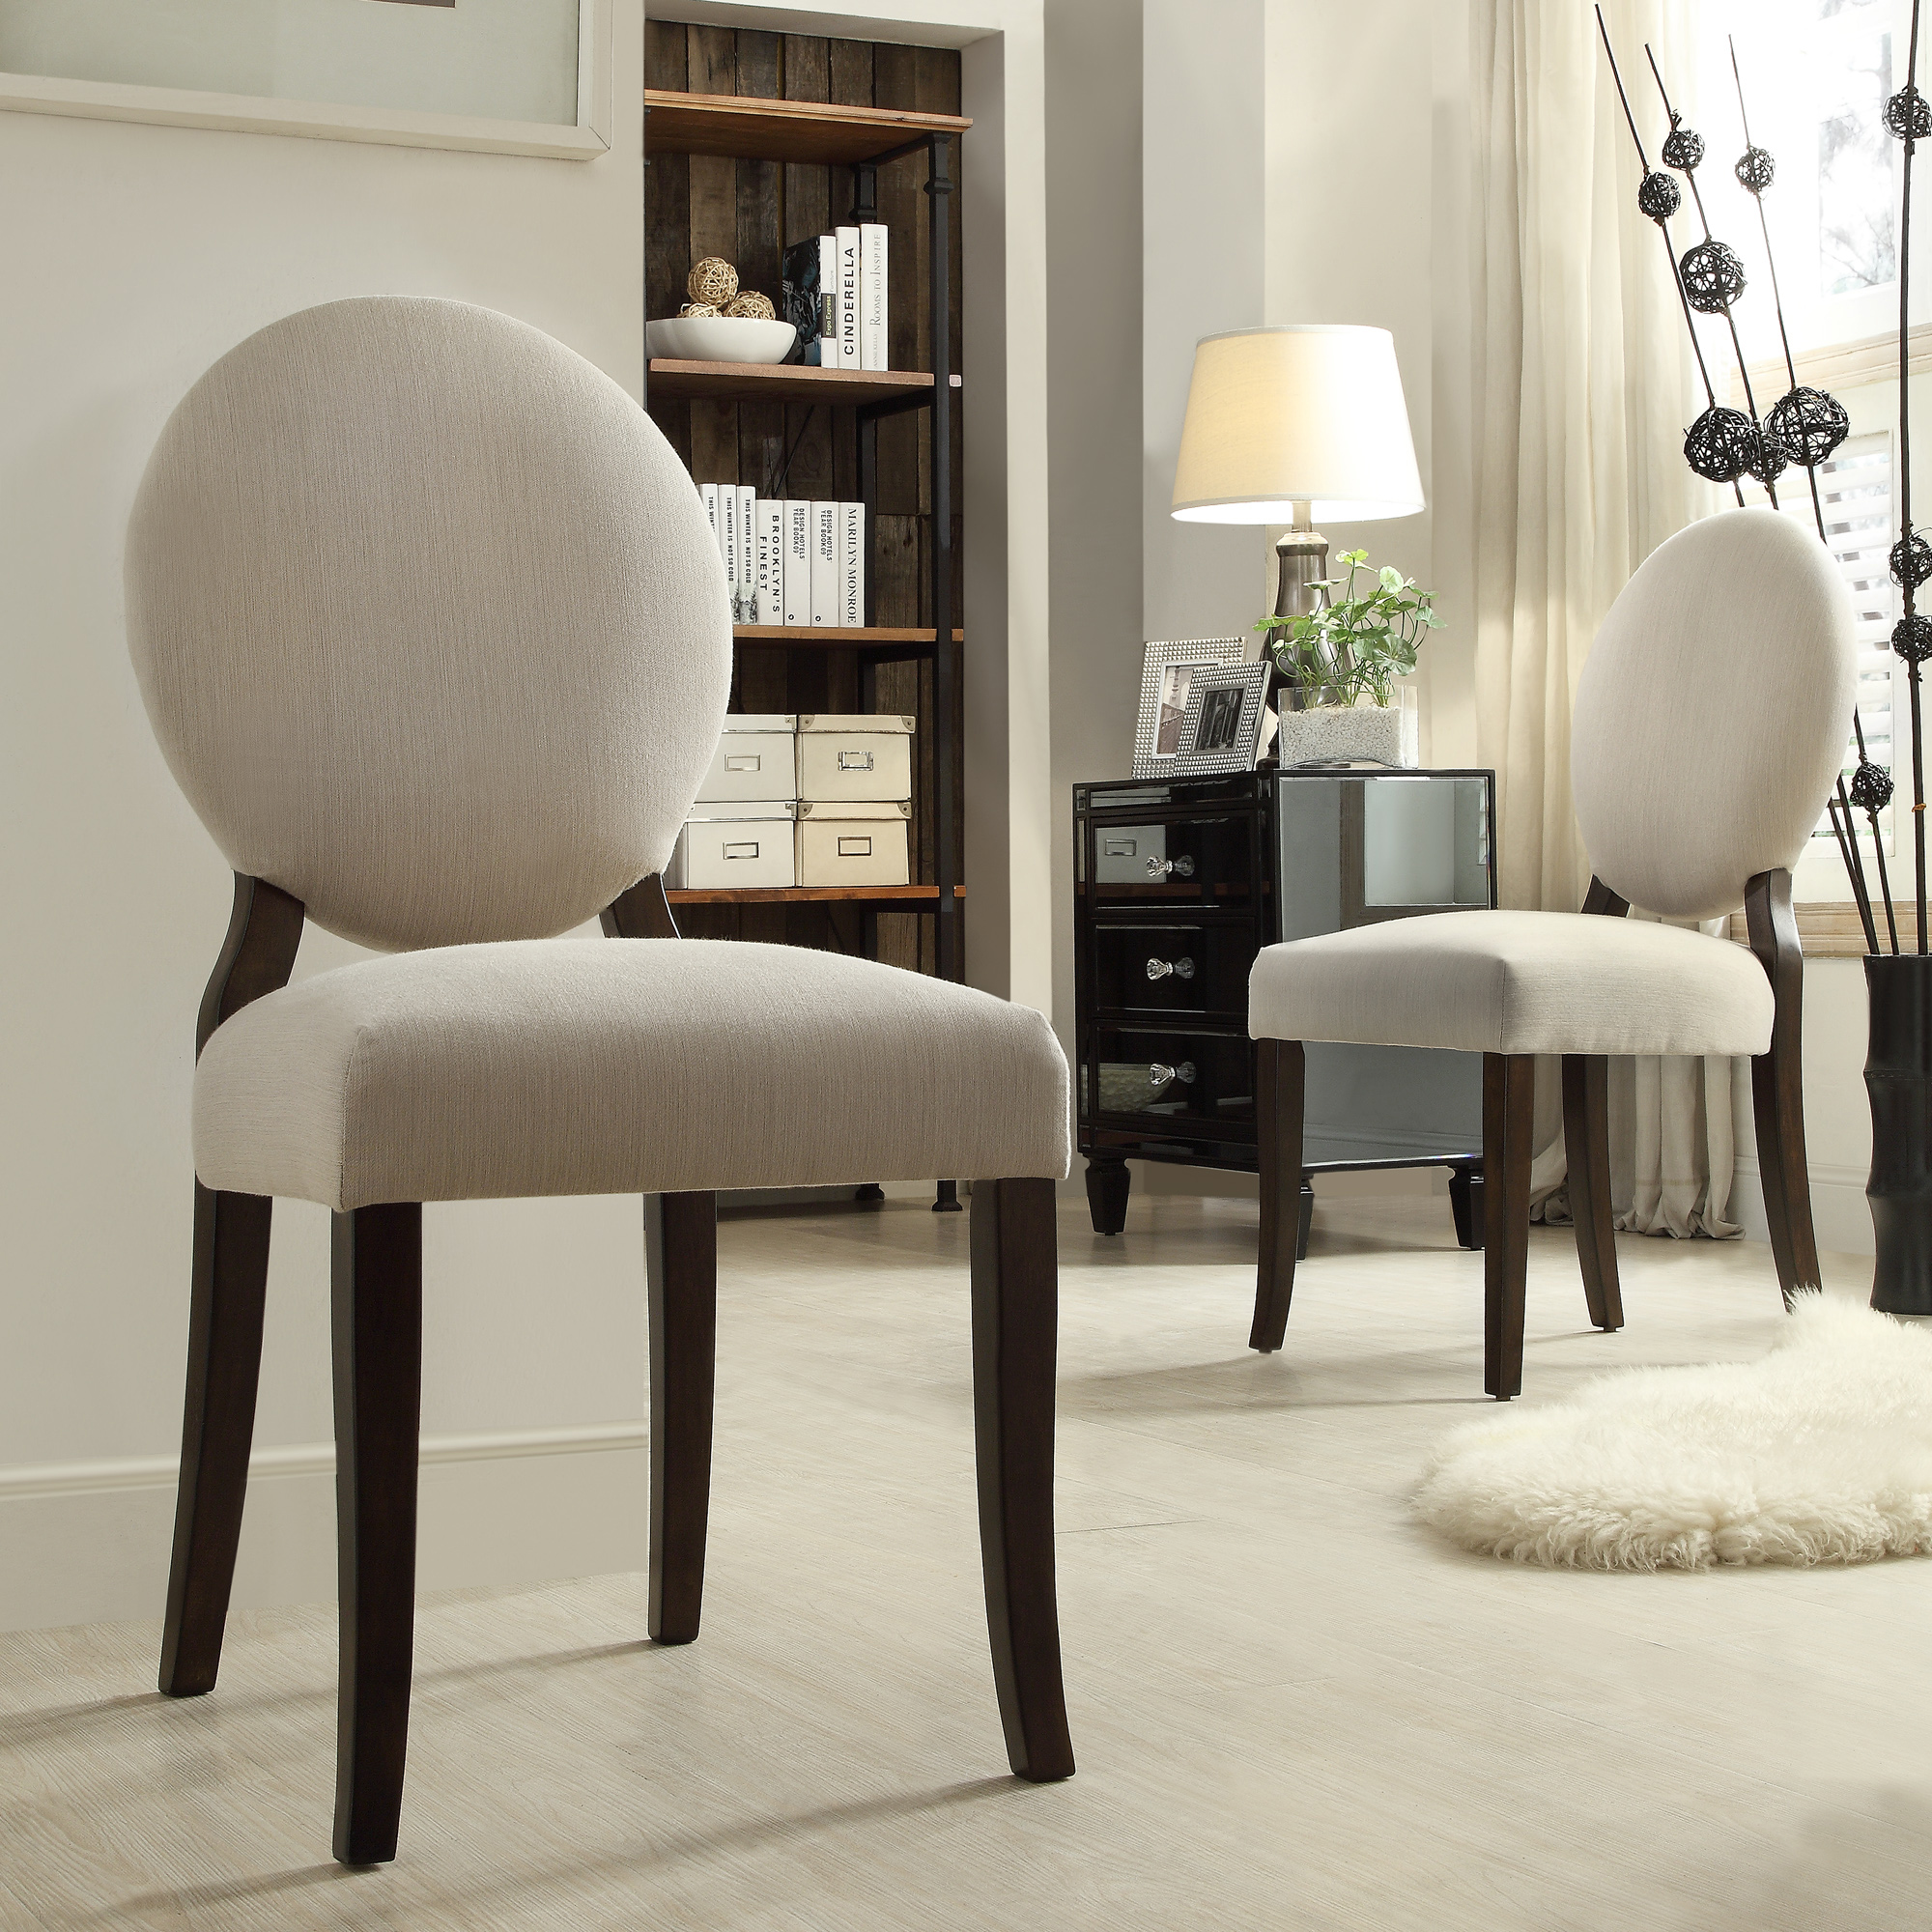 Round Back Dining Room Chairs Oxford Creek Harlem Grey Round Back Side Chair Set Of 2